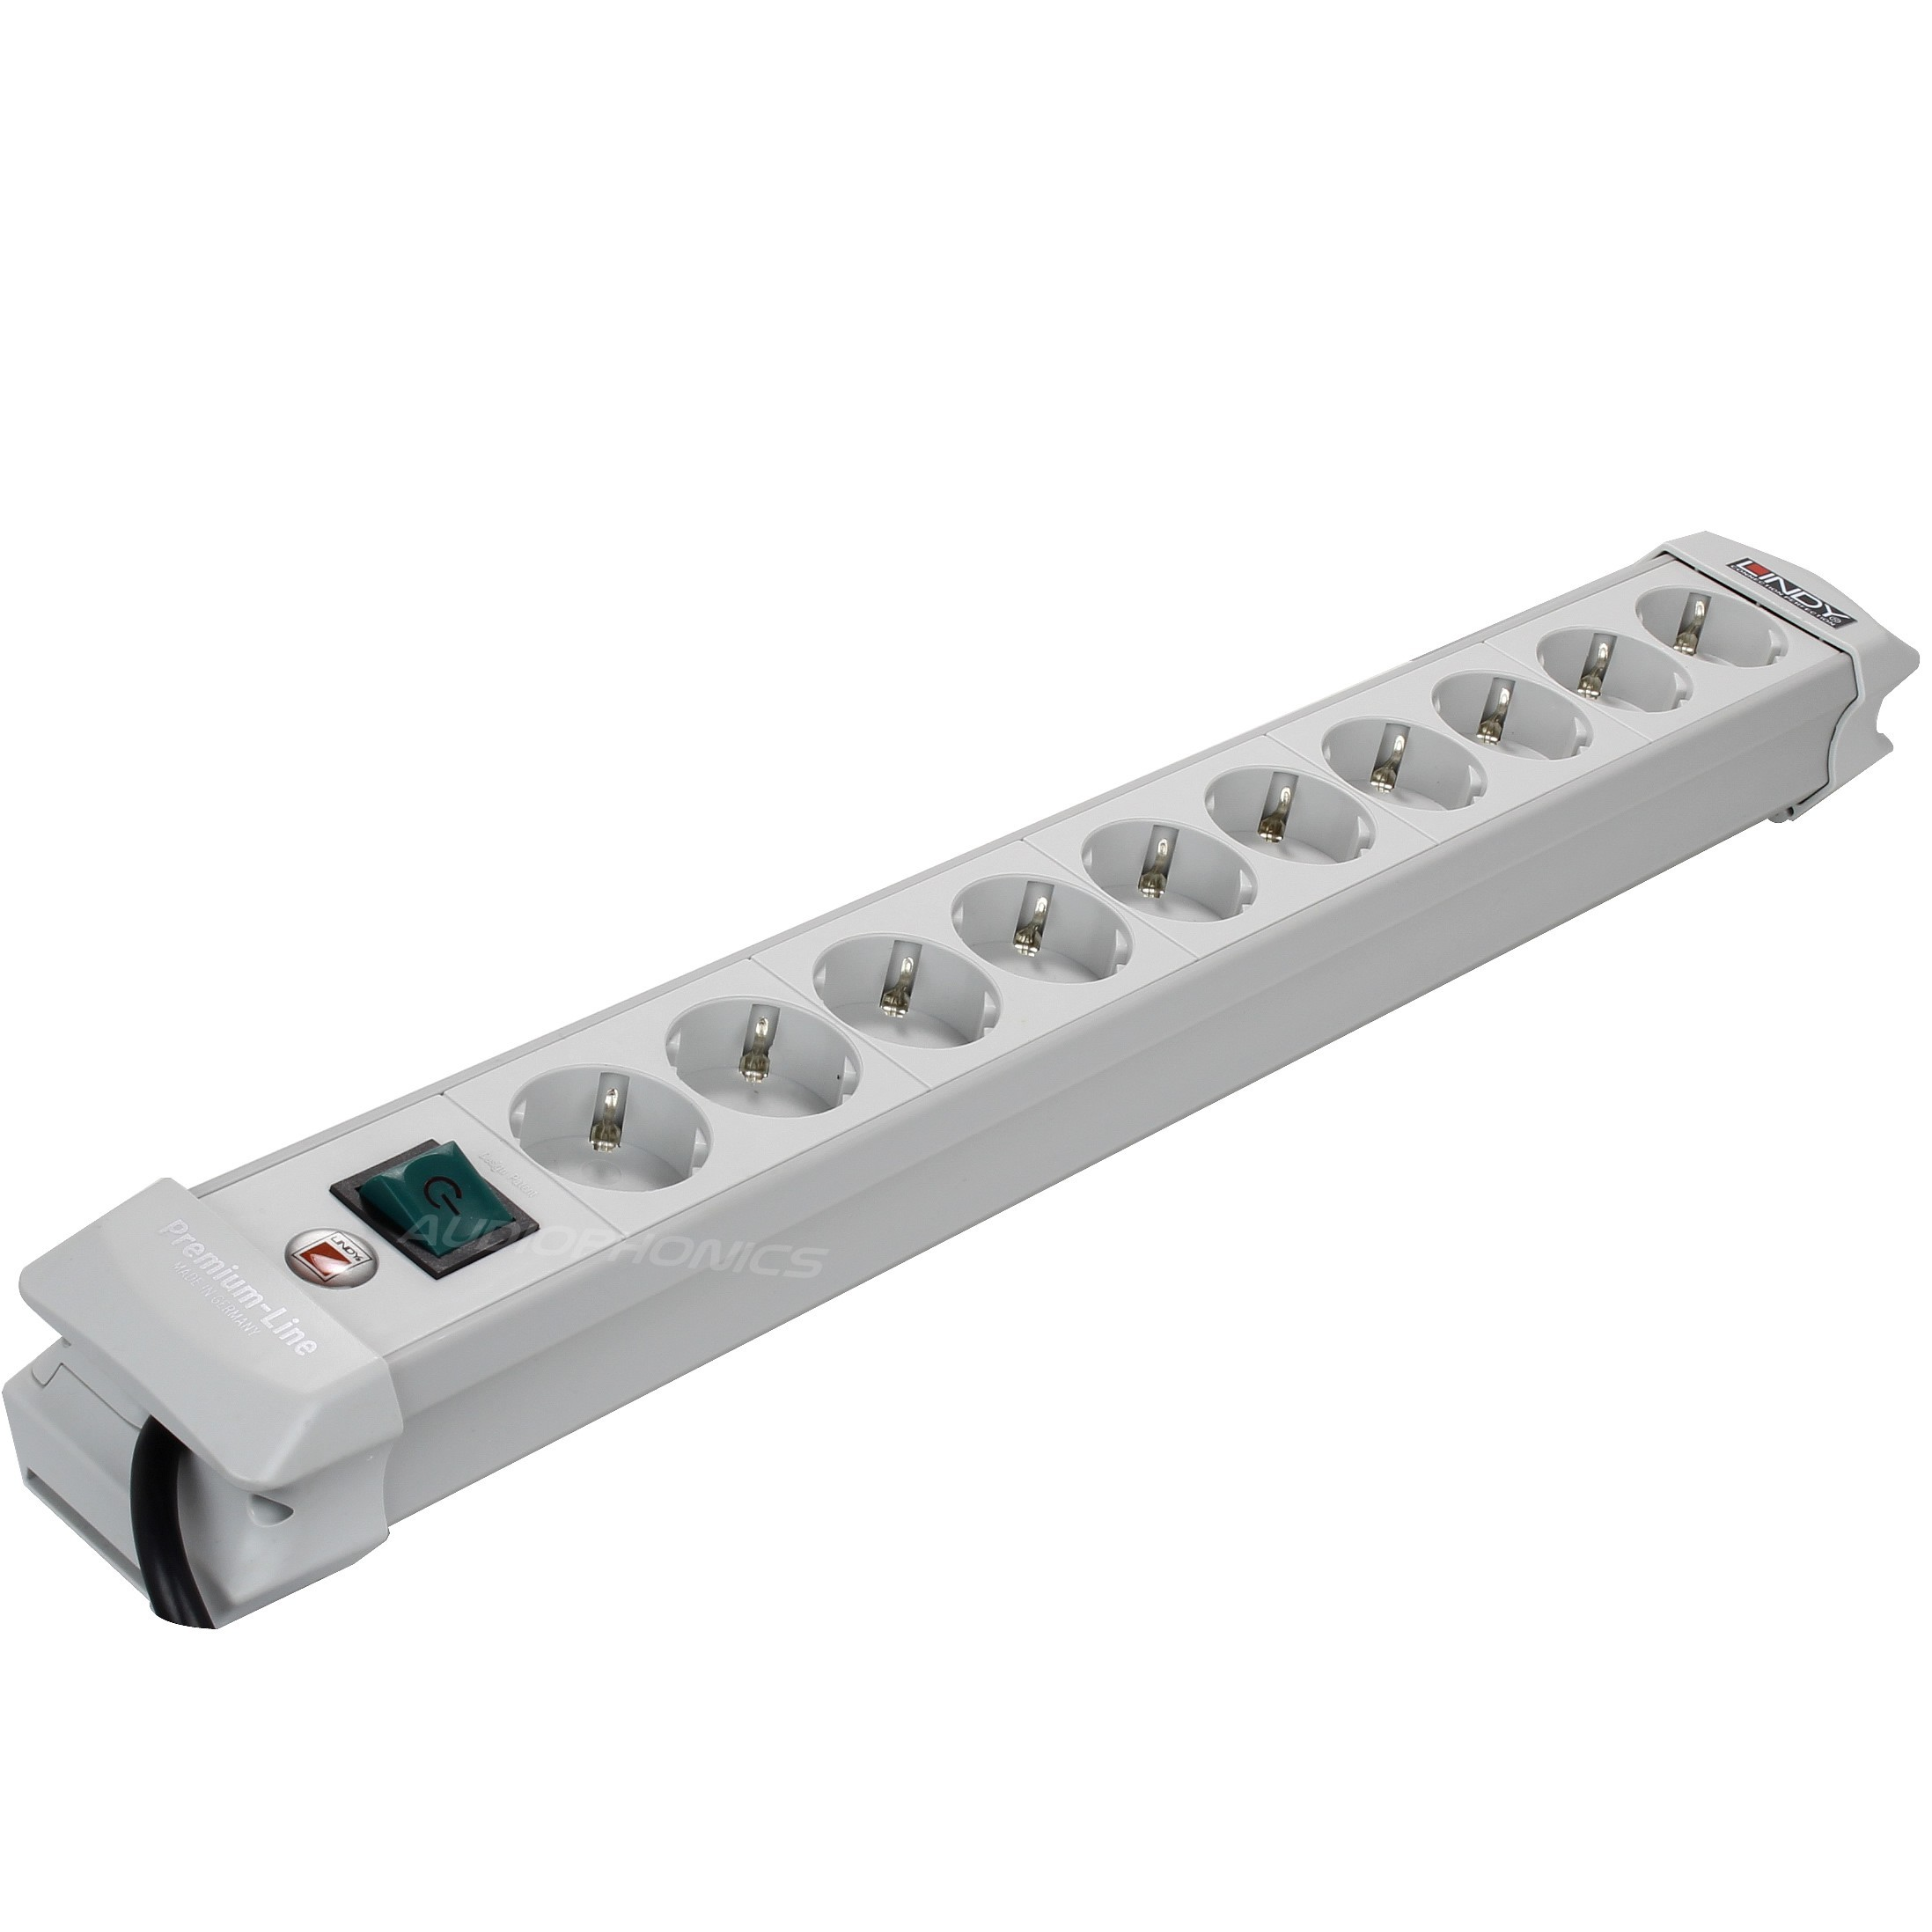 Power distribution unit Premium 10 Schuko with Power switch